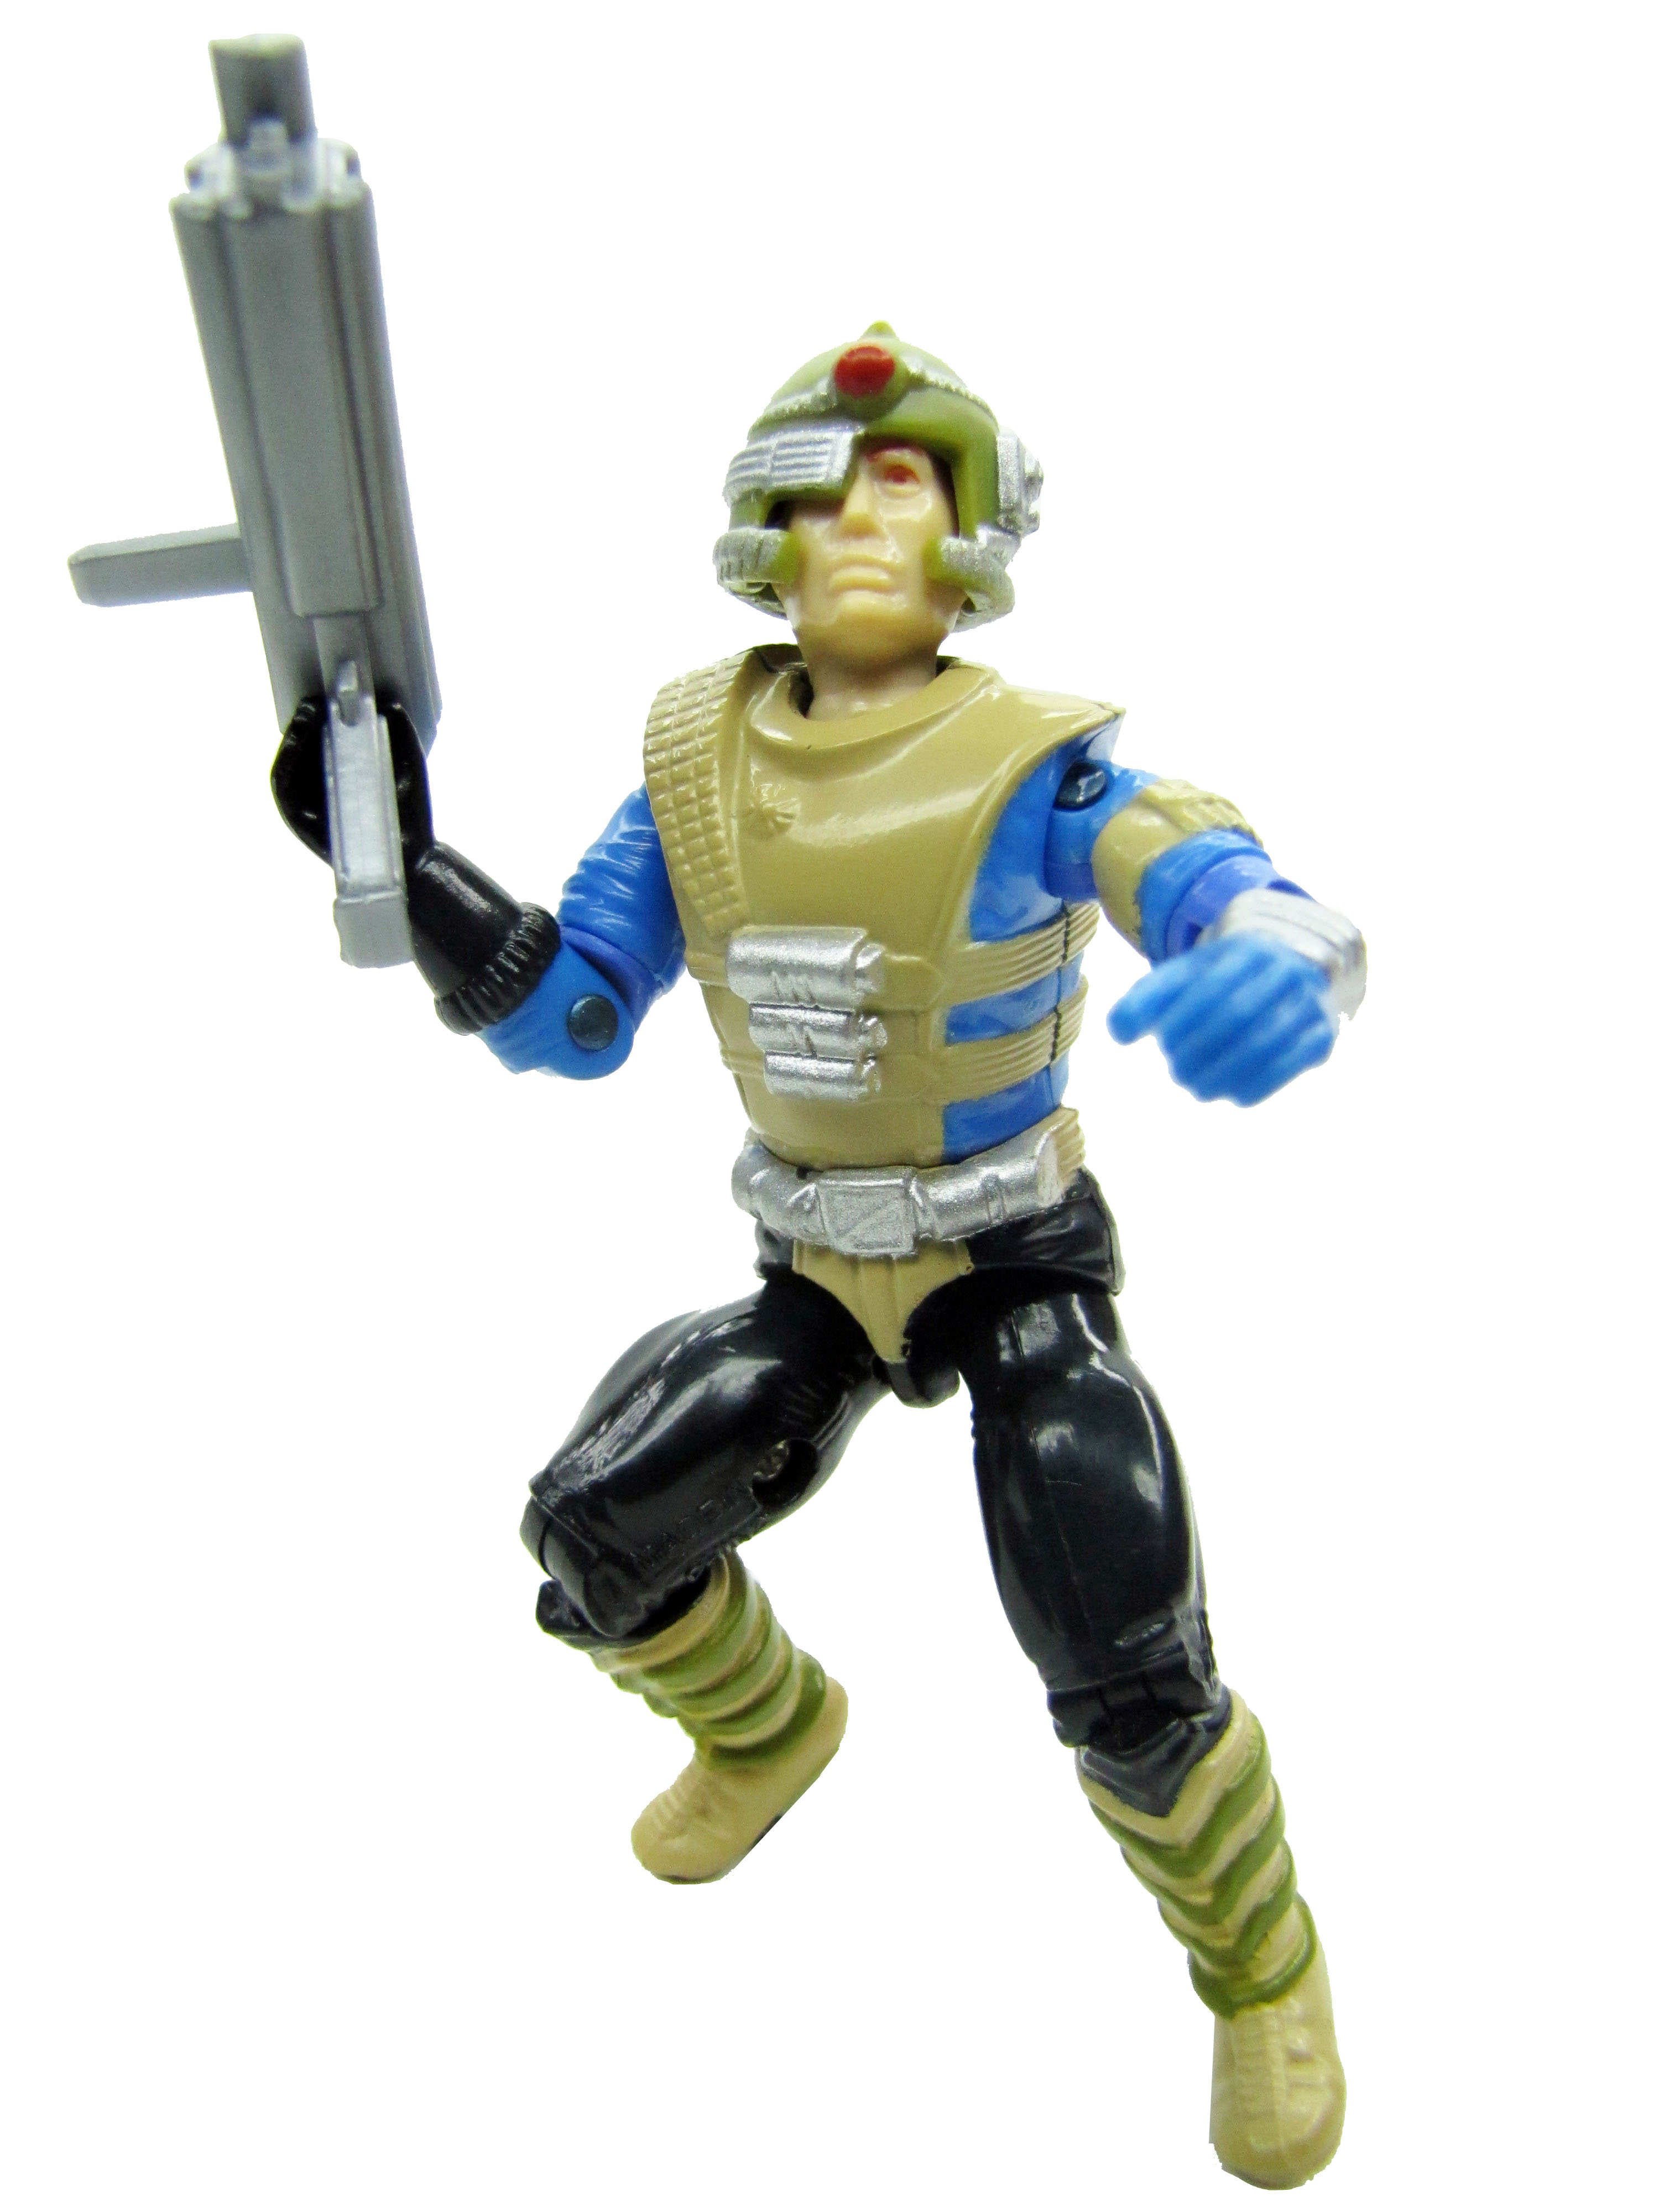 1987 GIJoe Knockdown SKY-SWEEPER ANTI-AIRCRAFT DRIVER Complete